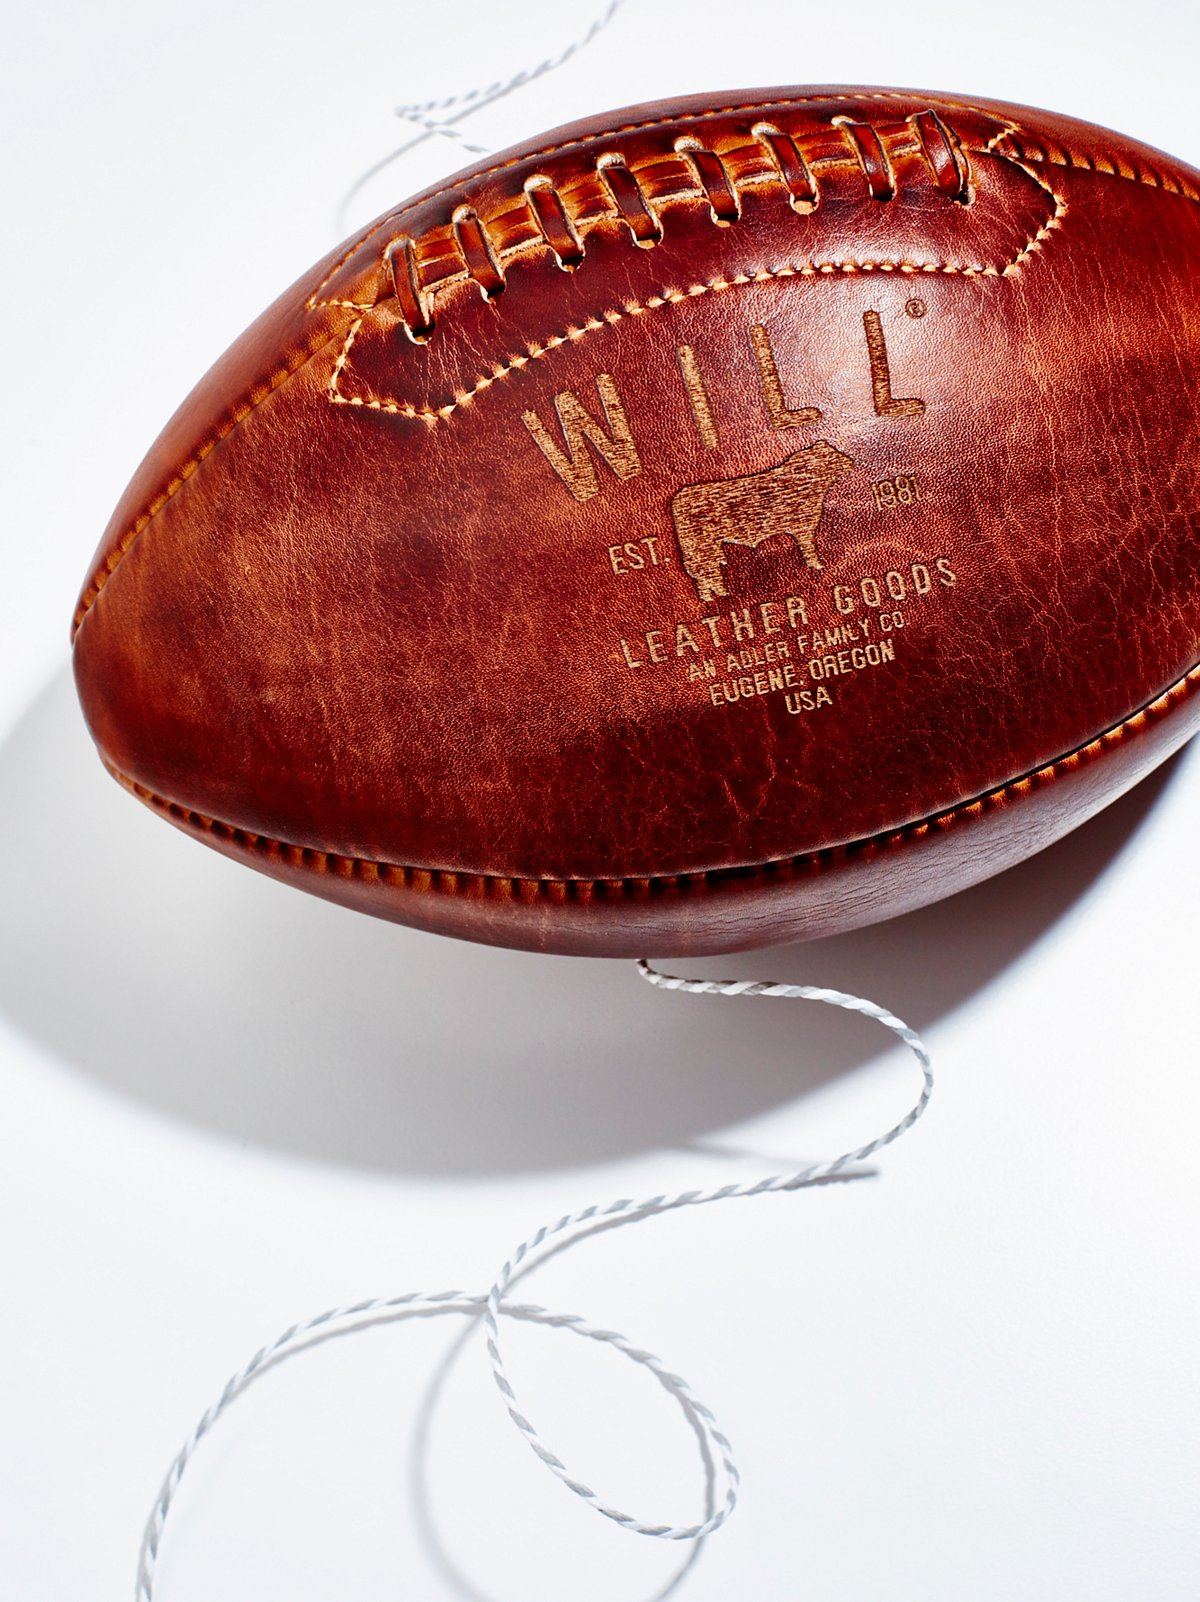 Golden Age Leather Football